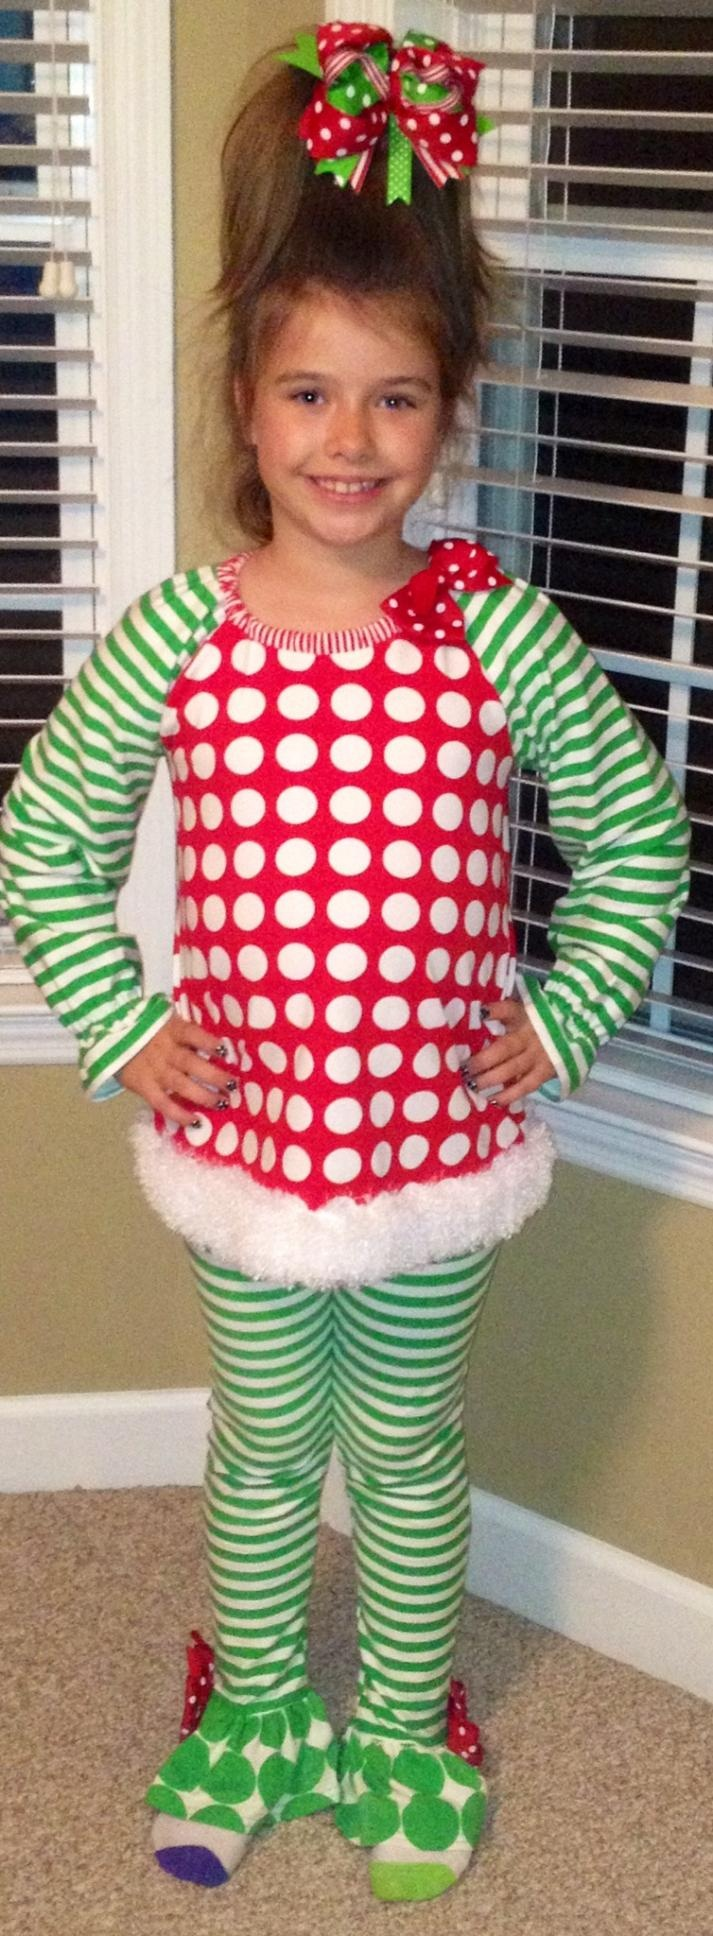 How to make your own grinch costume - My Sisters Christmas Costume For Her Play Can You Say Cutiest Cindy Loohoo Ever